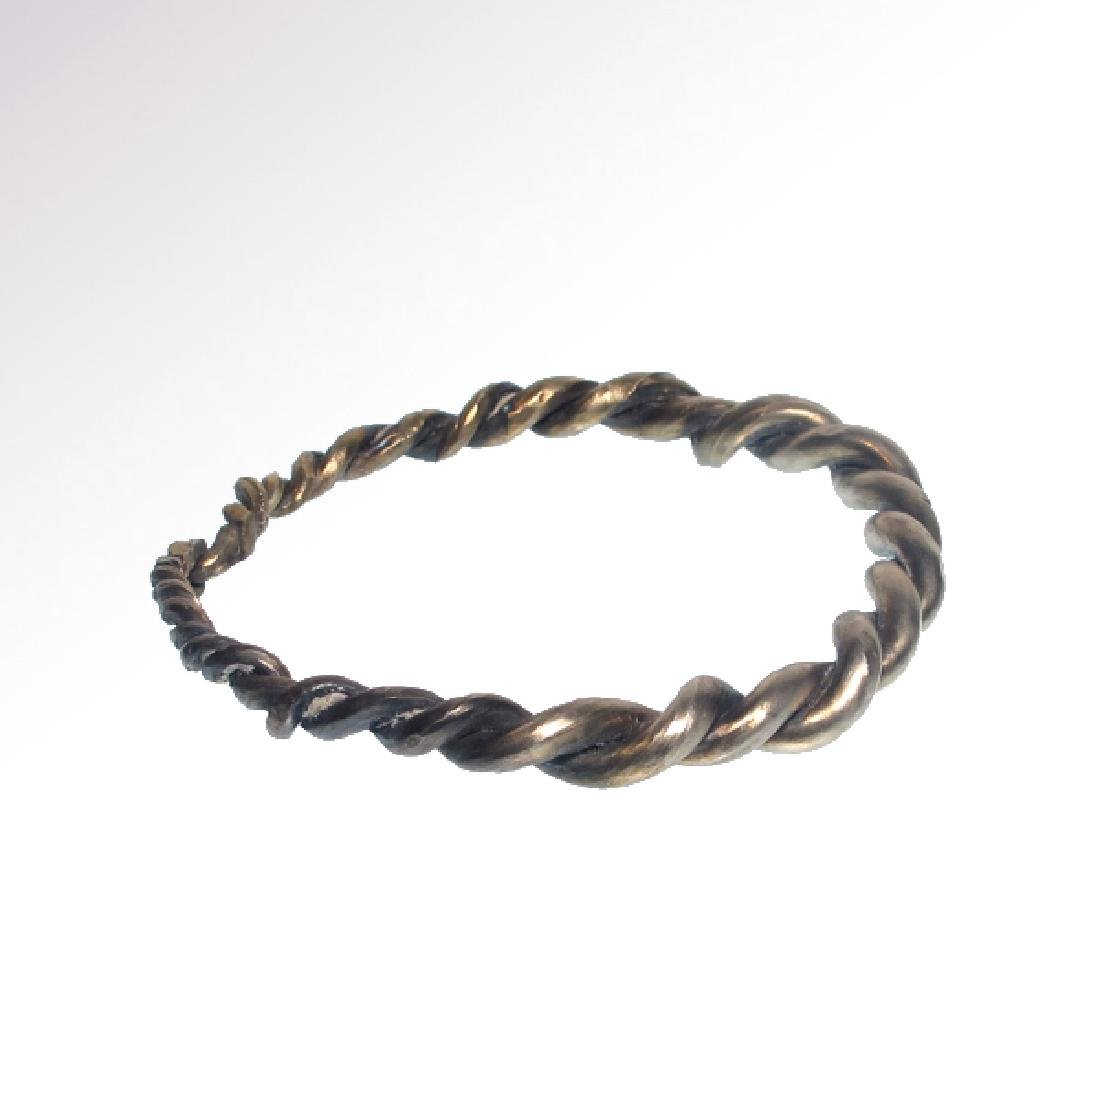 Viking Solid Silver Bracelet, c. 10th-11th Century A.D. - 4